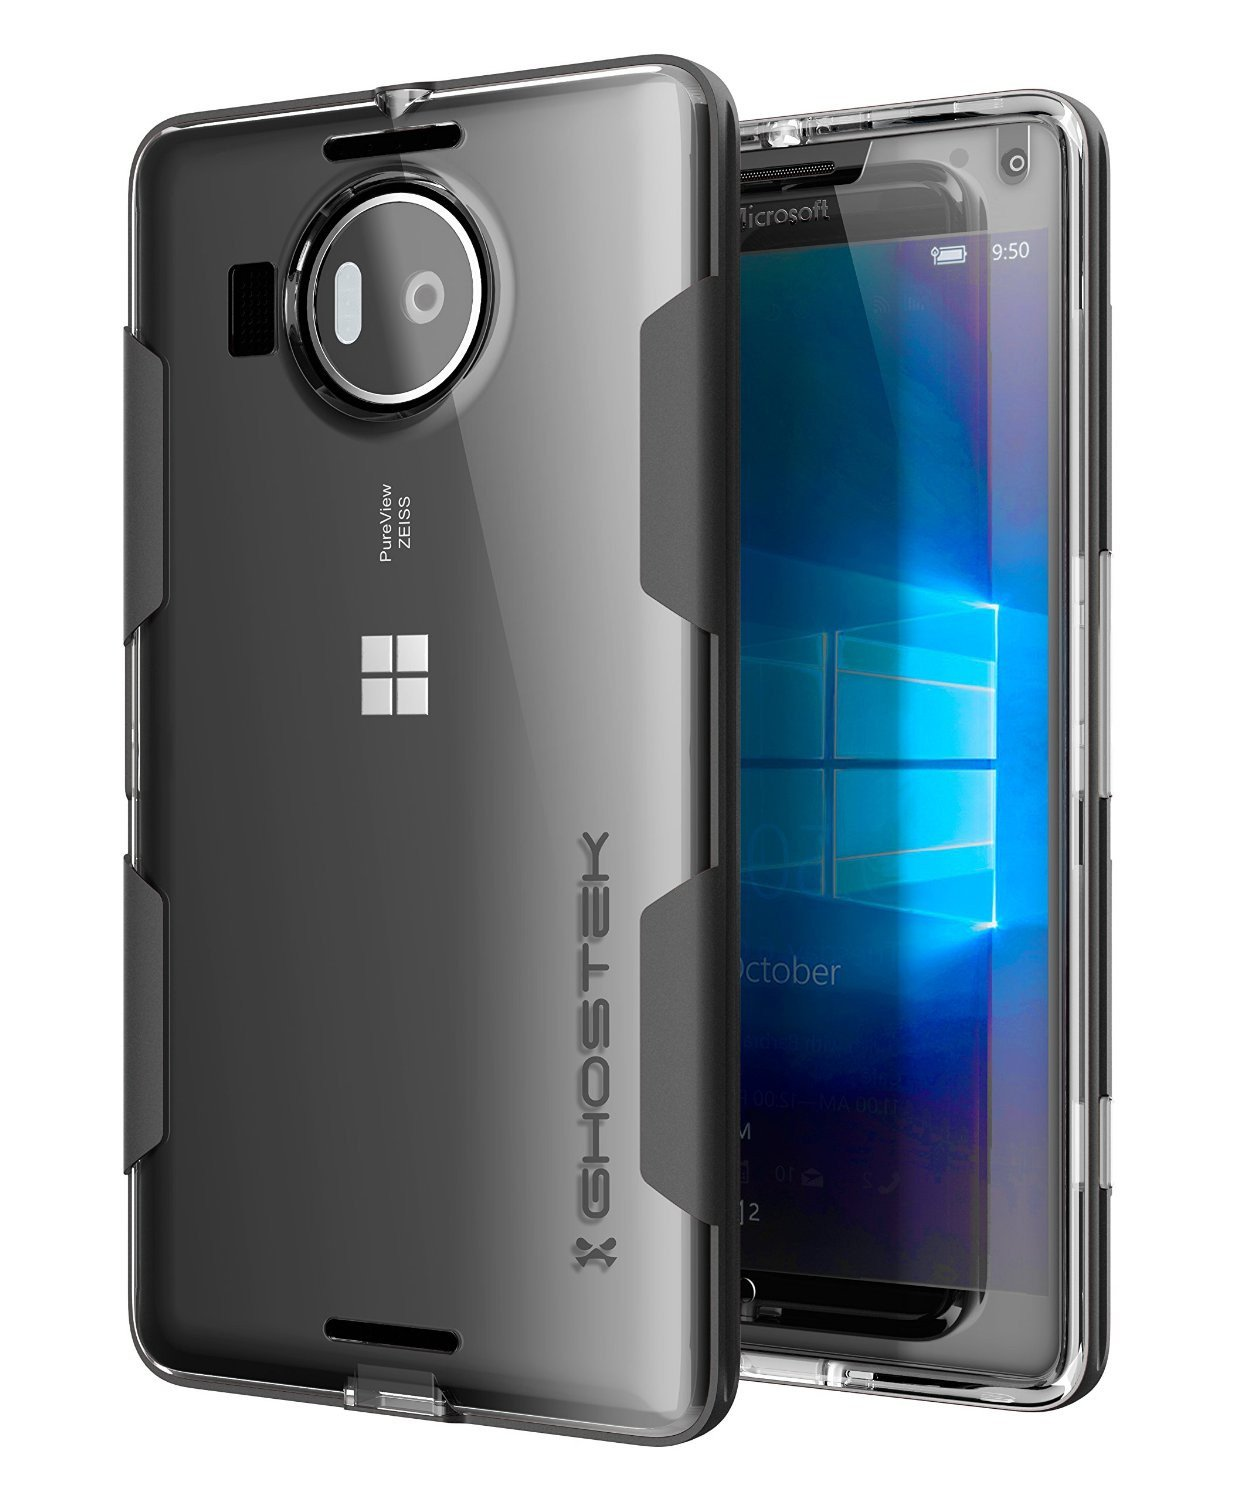 Microsoft 950 XL Case, Ghostek® Cloak Black Slim Hybrid Impact Armor | Lifetime Warranty Exchange